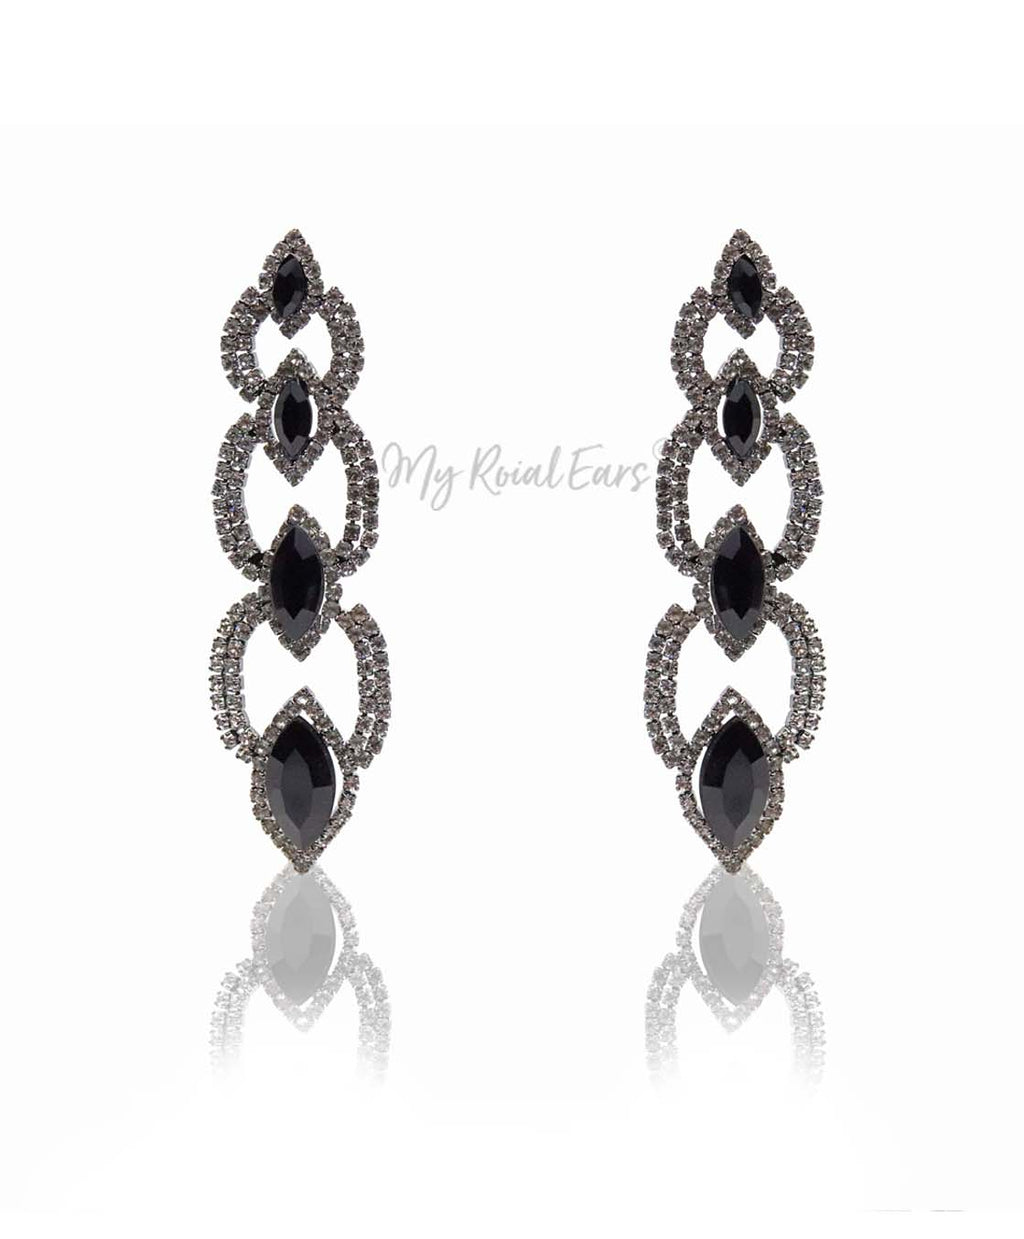 Q.Savannah-long crystal statement drop earrings - My Roial Ears LTD